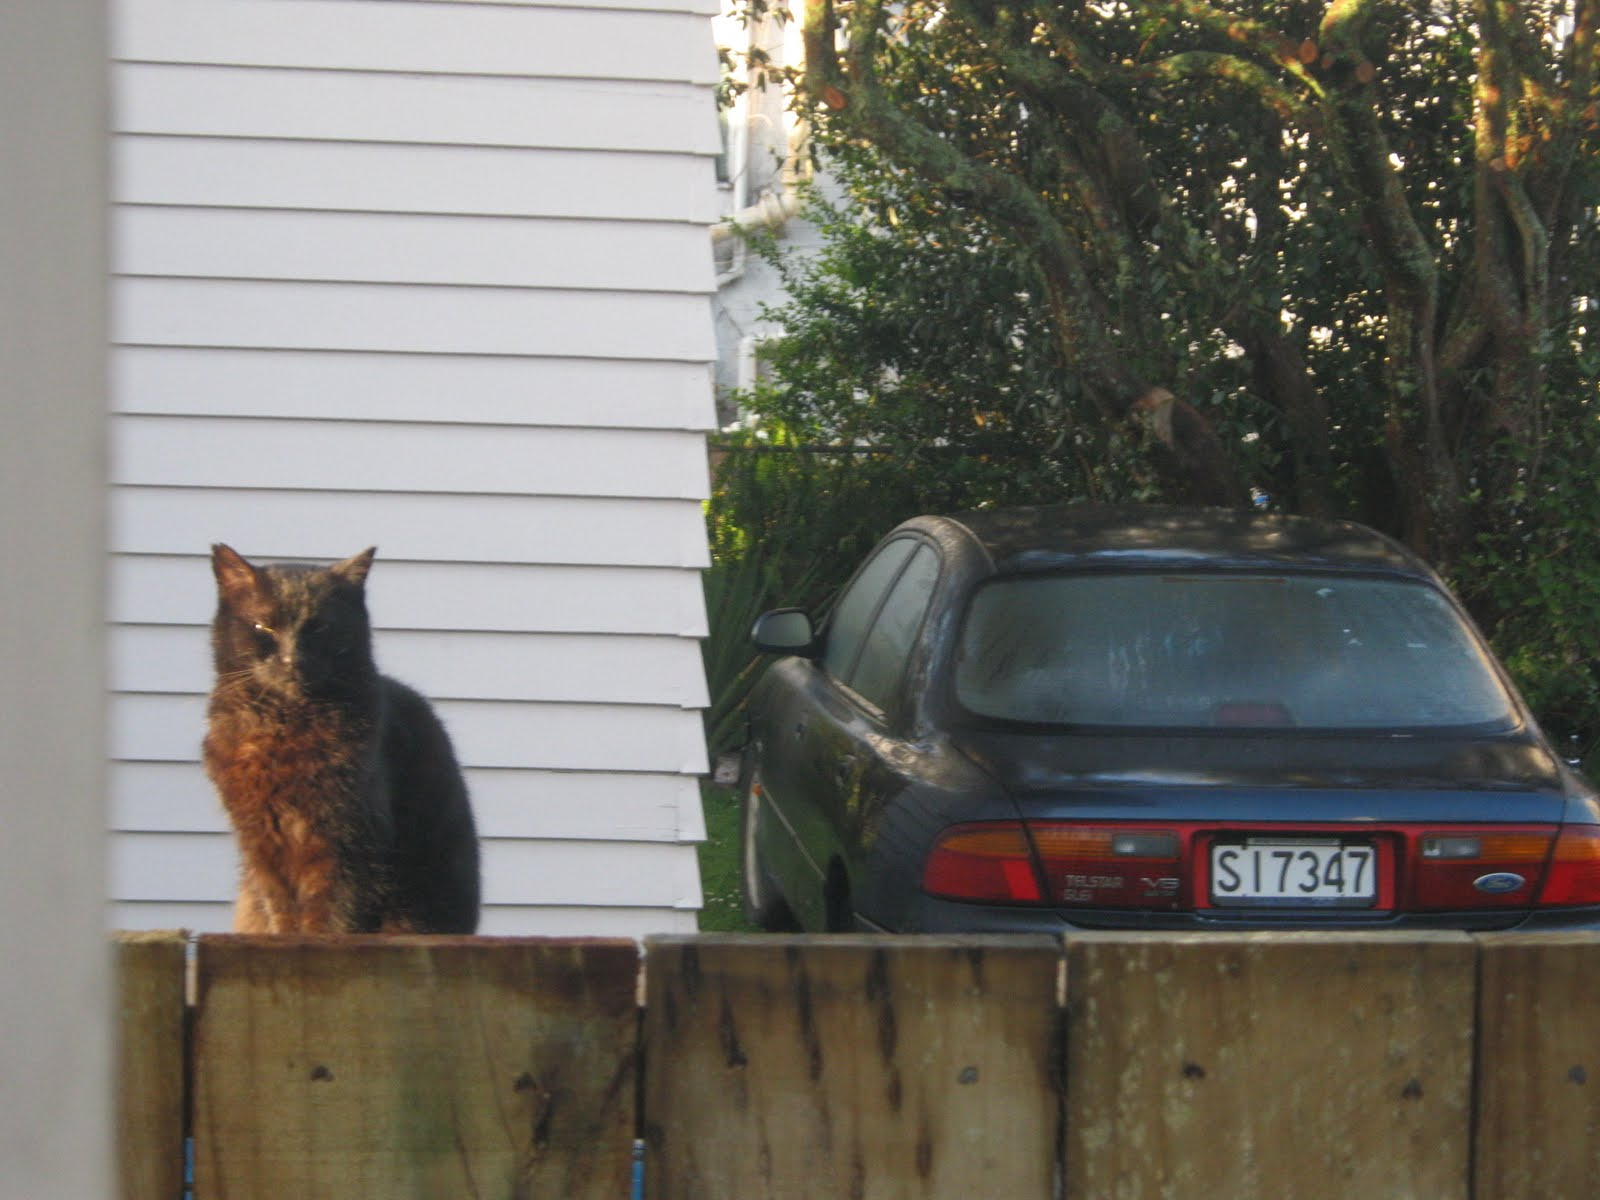 Neighbor S Cat Scratched My Car